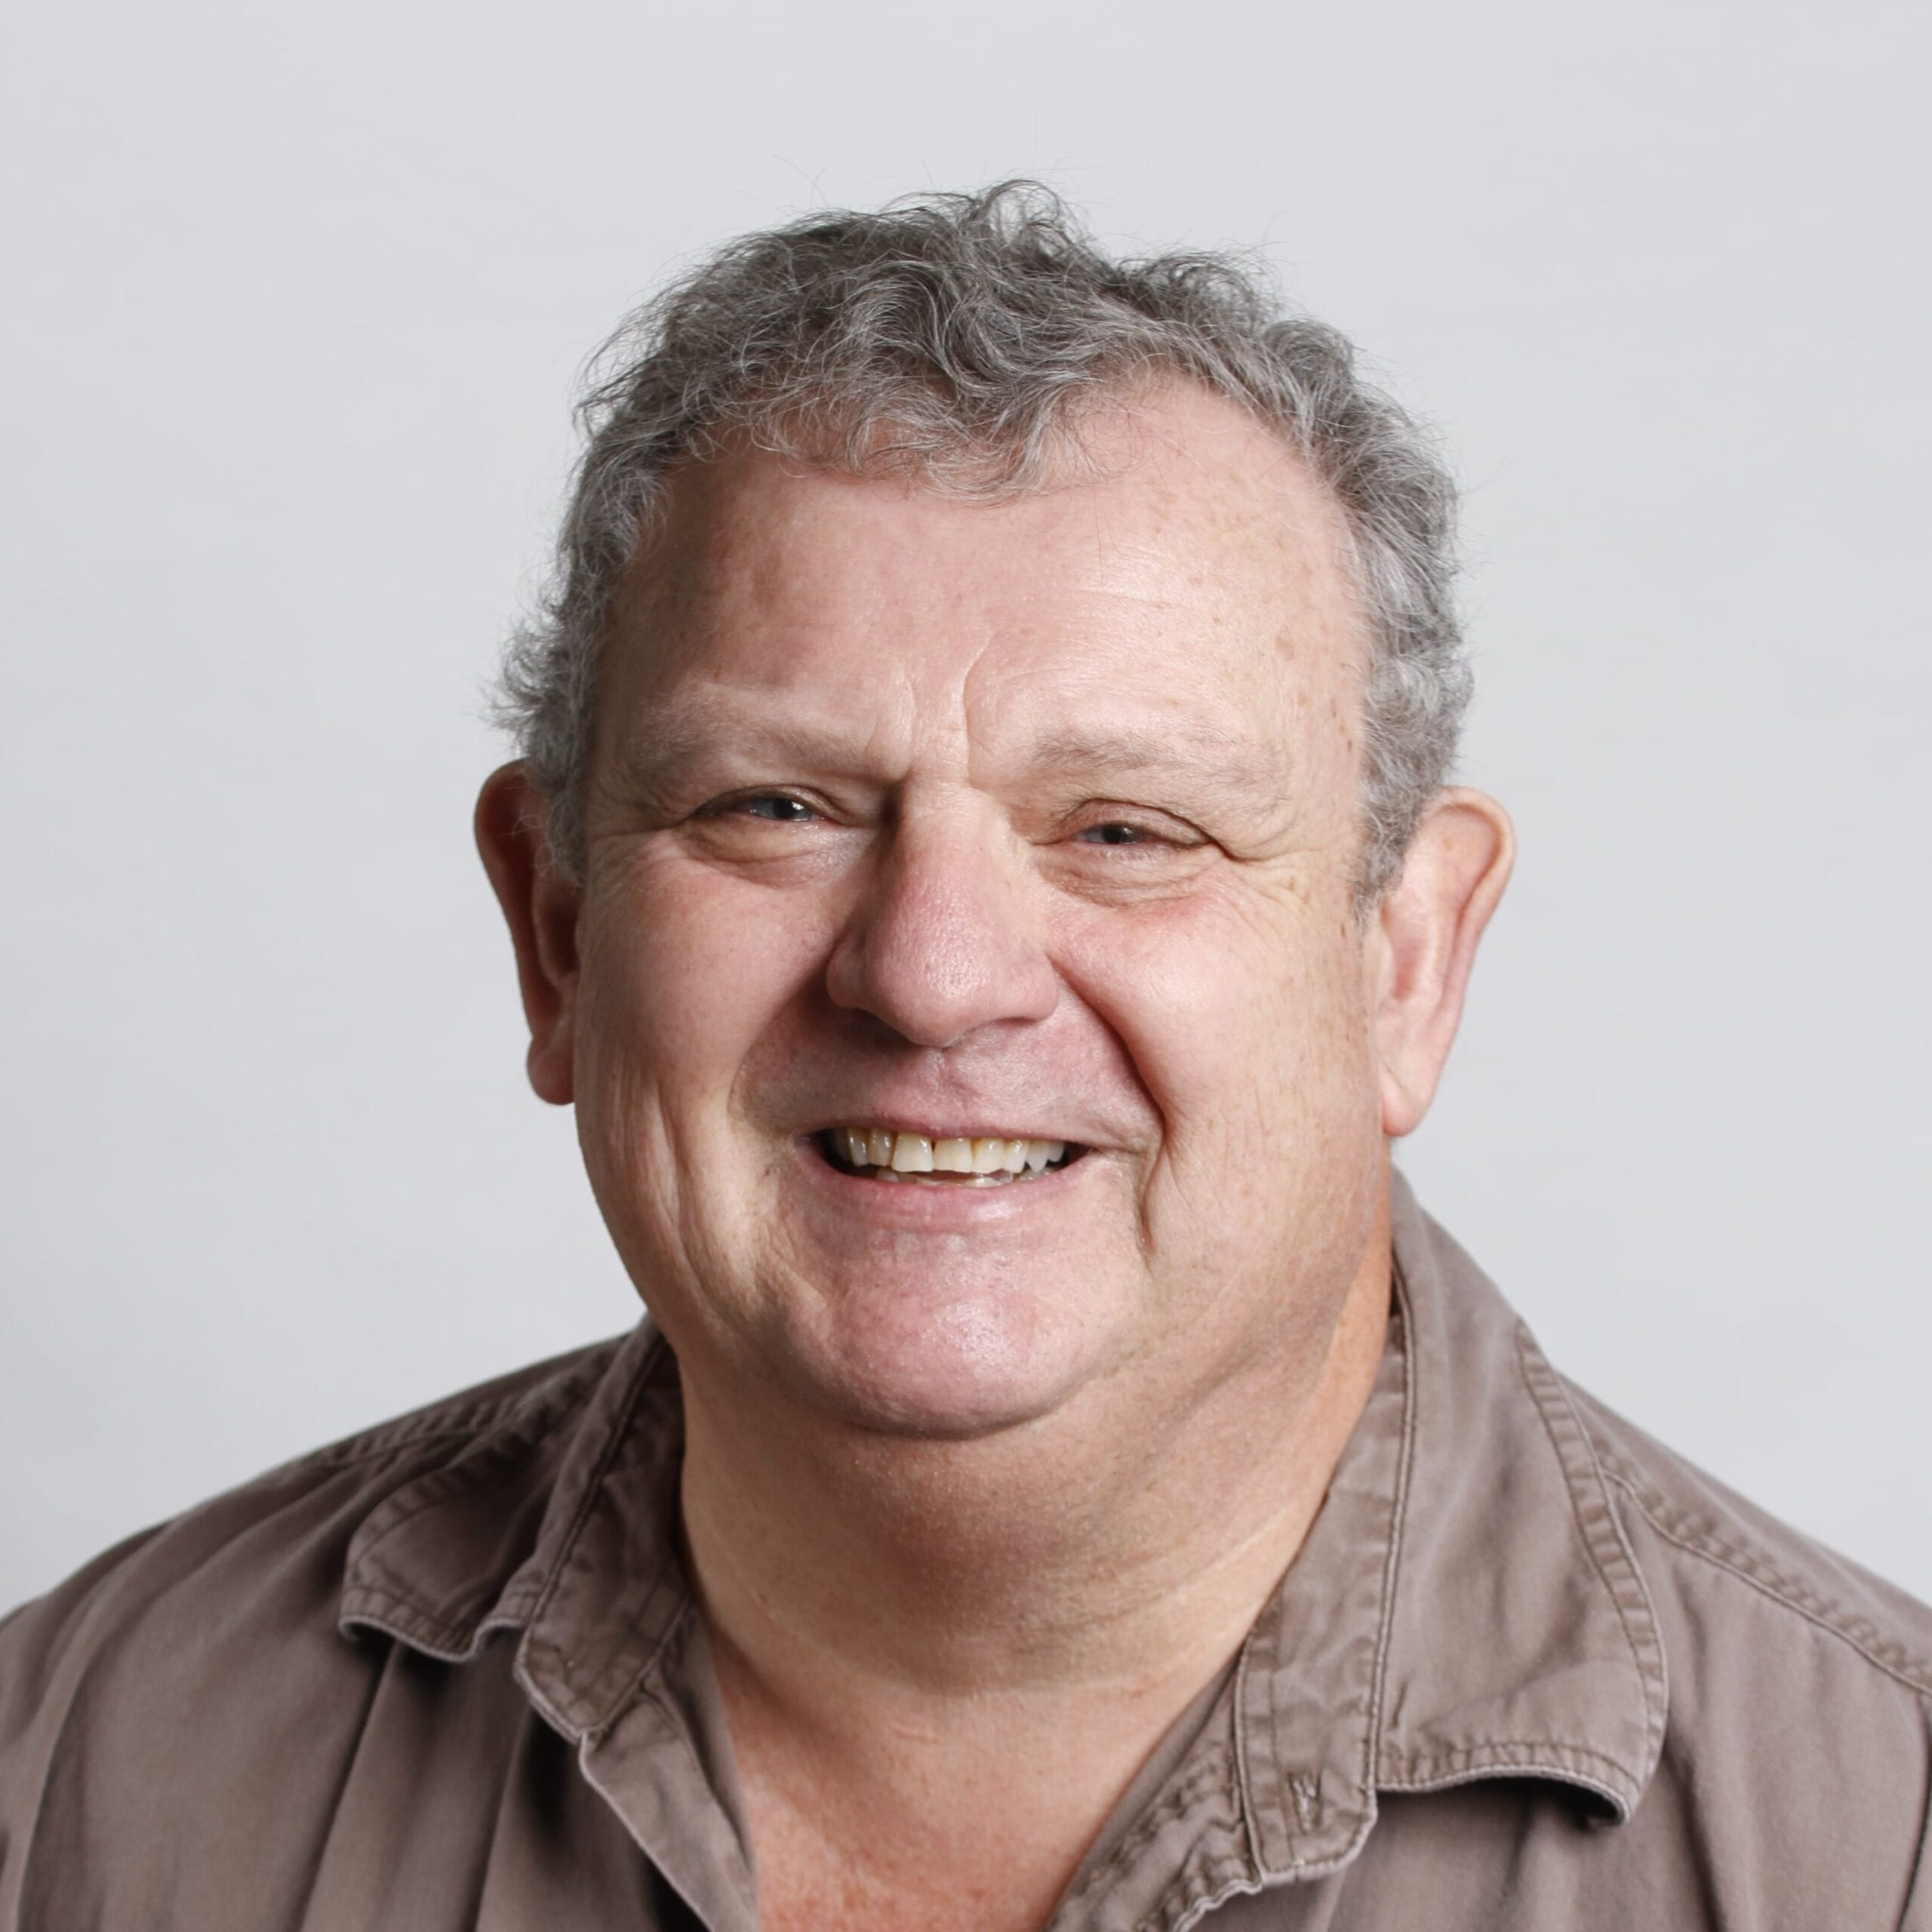 Darrel Whitmore Waste Recycling Manager